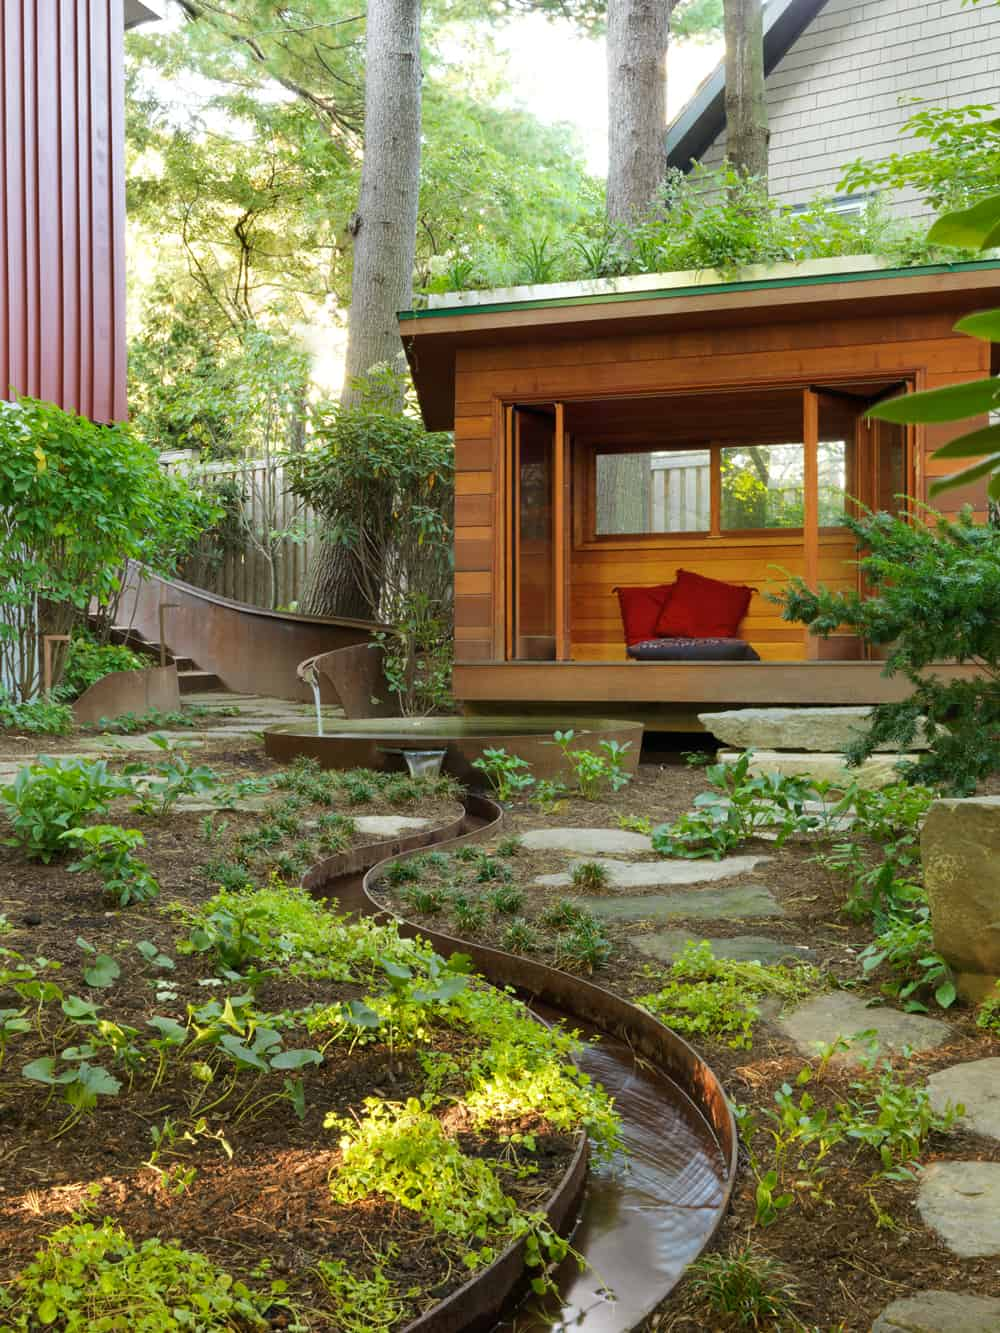 Pool, rill, and meditation hut. Landscape design by JMMDS, Photograph by Susan Teare